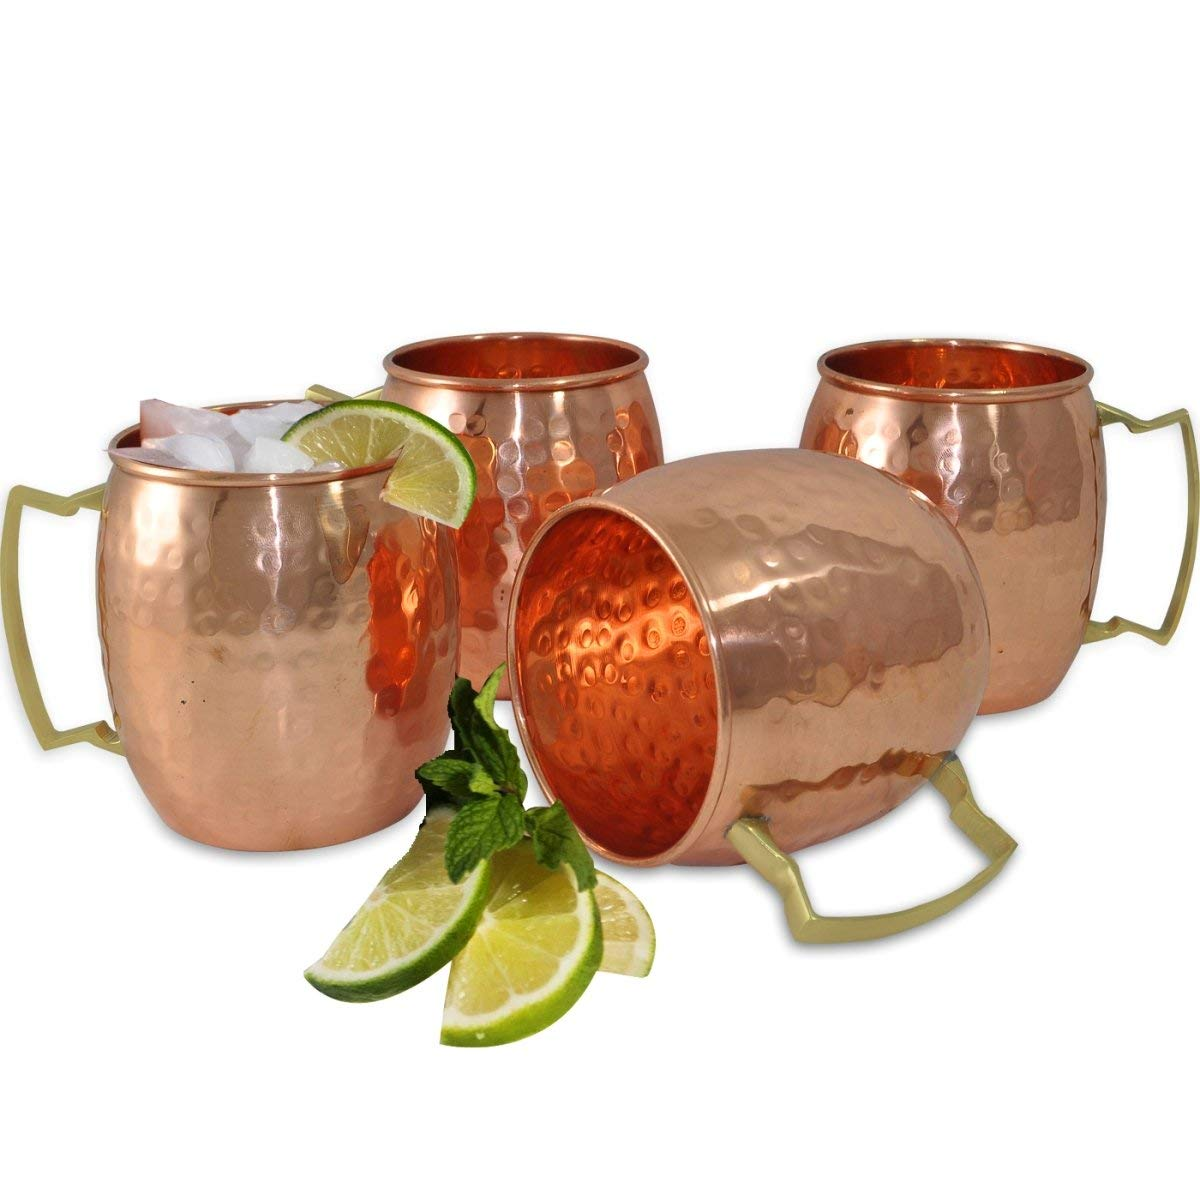 AsiaCraft Hammered Copper Moscow Mule Mug Handmade of 100% Pure Copper, Brass Handle 16 Oz No Inner Lining Set of 4– Lacquered Finish – FDA Approved